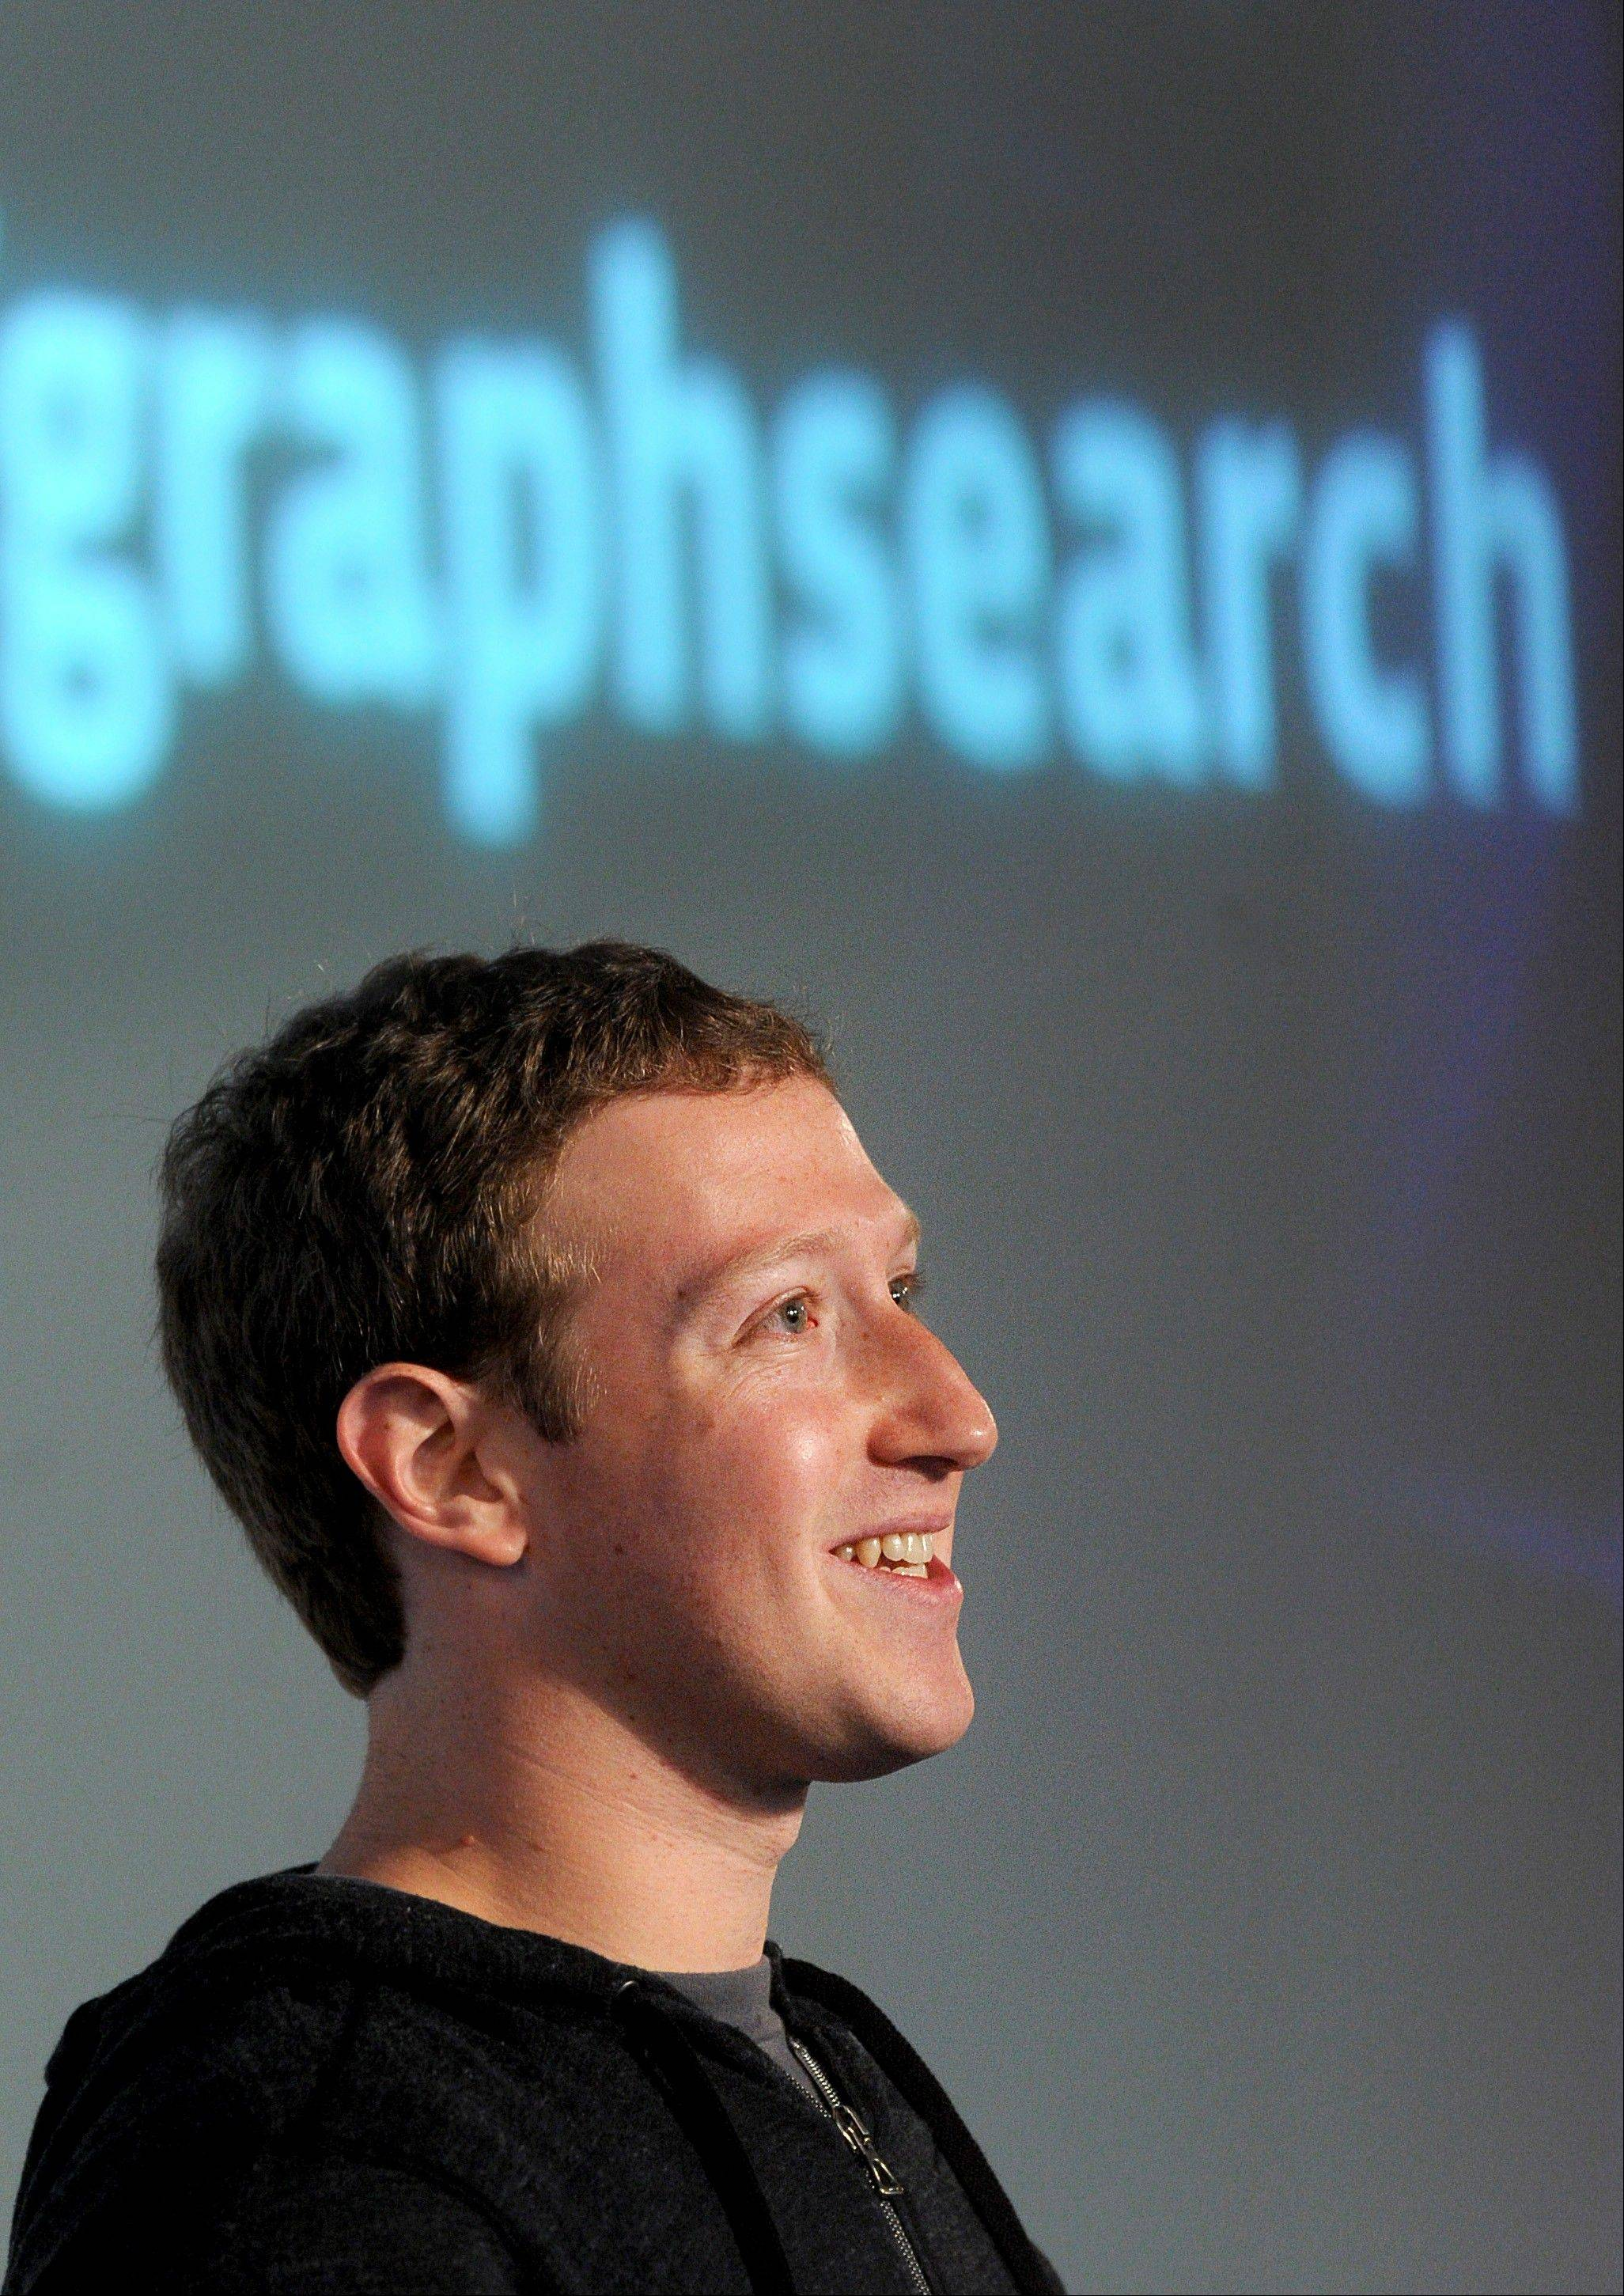 Mark Zuckerberg, chief executive officer and founder of Facebook Inc., introduces Graph Search at Facebook headquarters in Menlo Park, Calif. This week, Facebook announced that it�s starting to roll out an update to Graph Search that allows people to run searches like, �Posts about the government shutdown by my friends,� or �Posts about the government shutdown by my friends who are Republicans,� or maybe, �Status updates about drinking by my friends from 2006.�